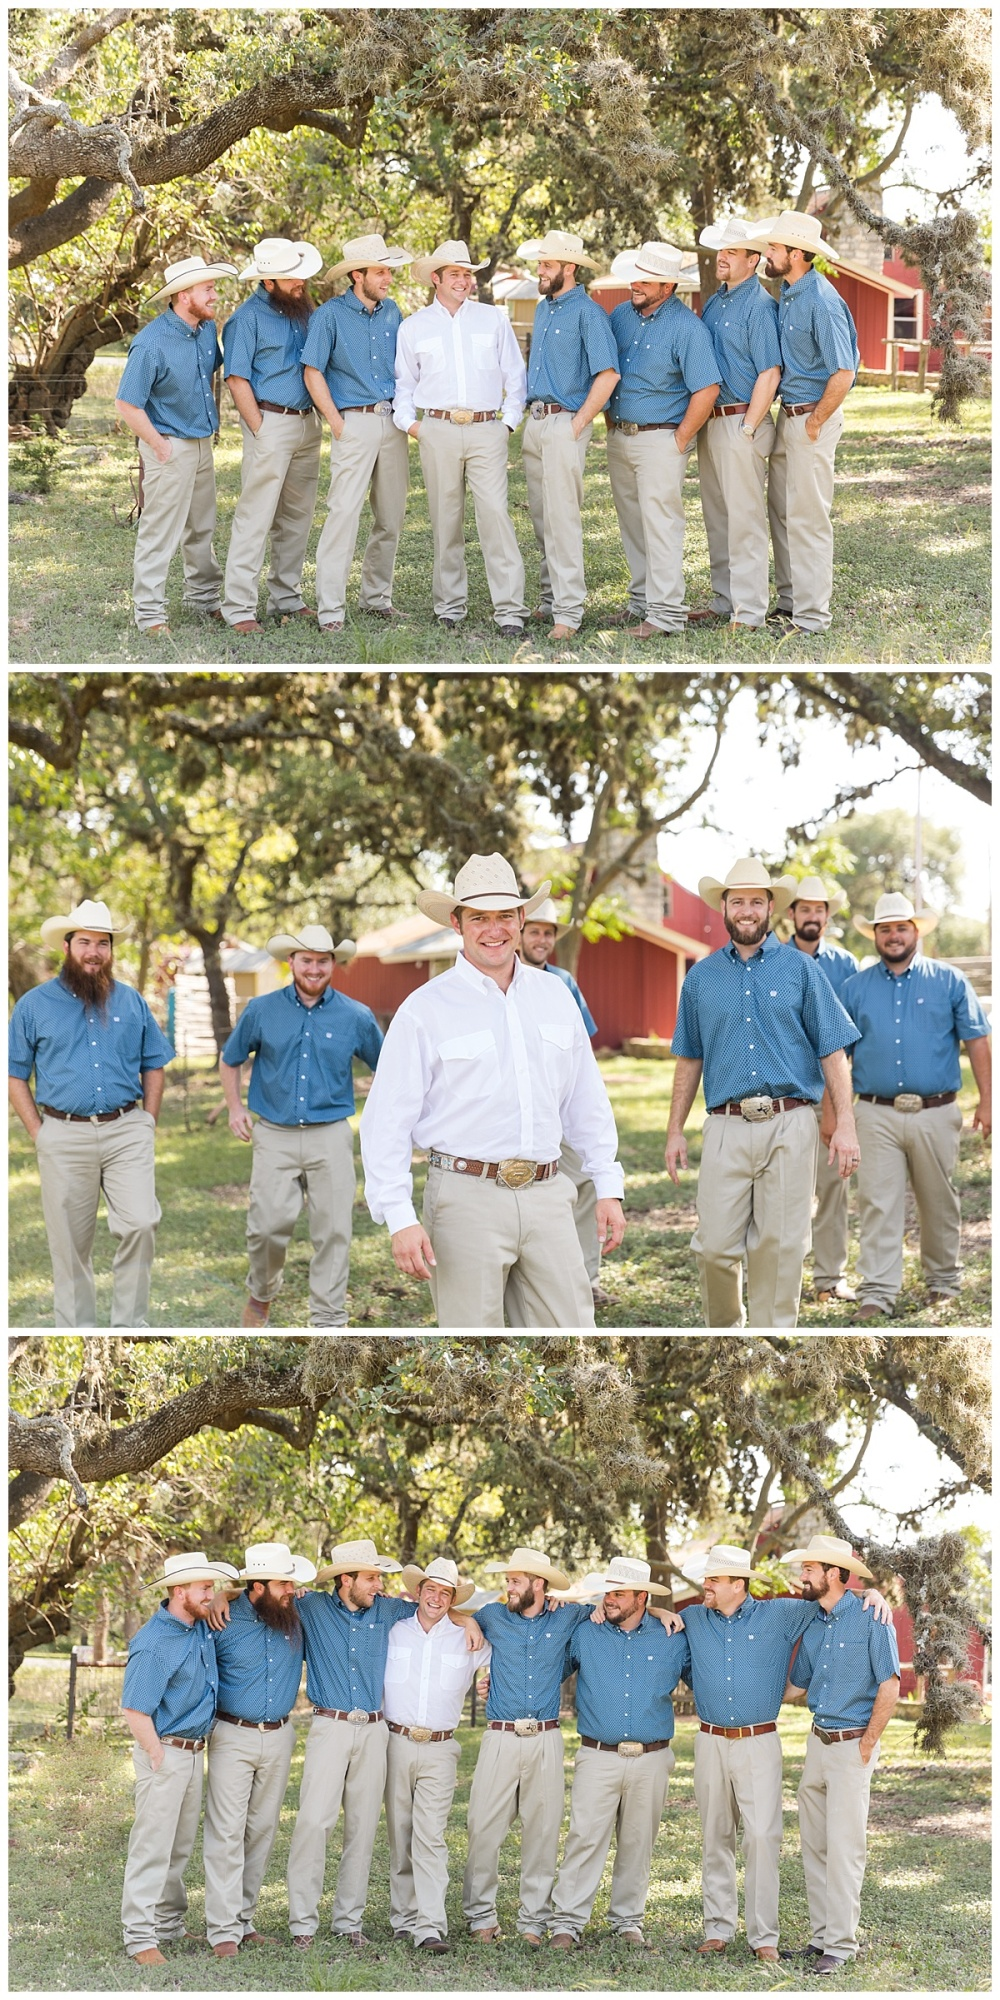 Texas-Wedding-Photographer-Braded-T-Ranch-Kendalia-Bride-Groom-Southwestern-Style-Carly-Barton-Photography-Vogt_0024.jpg